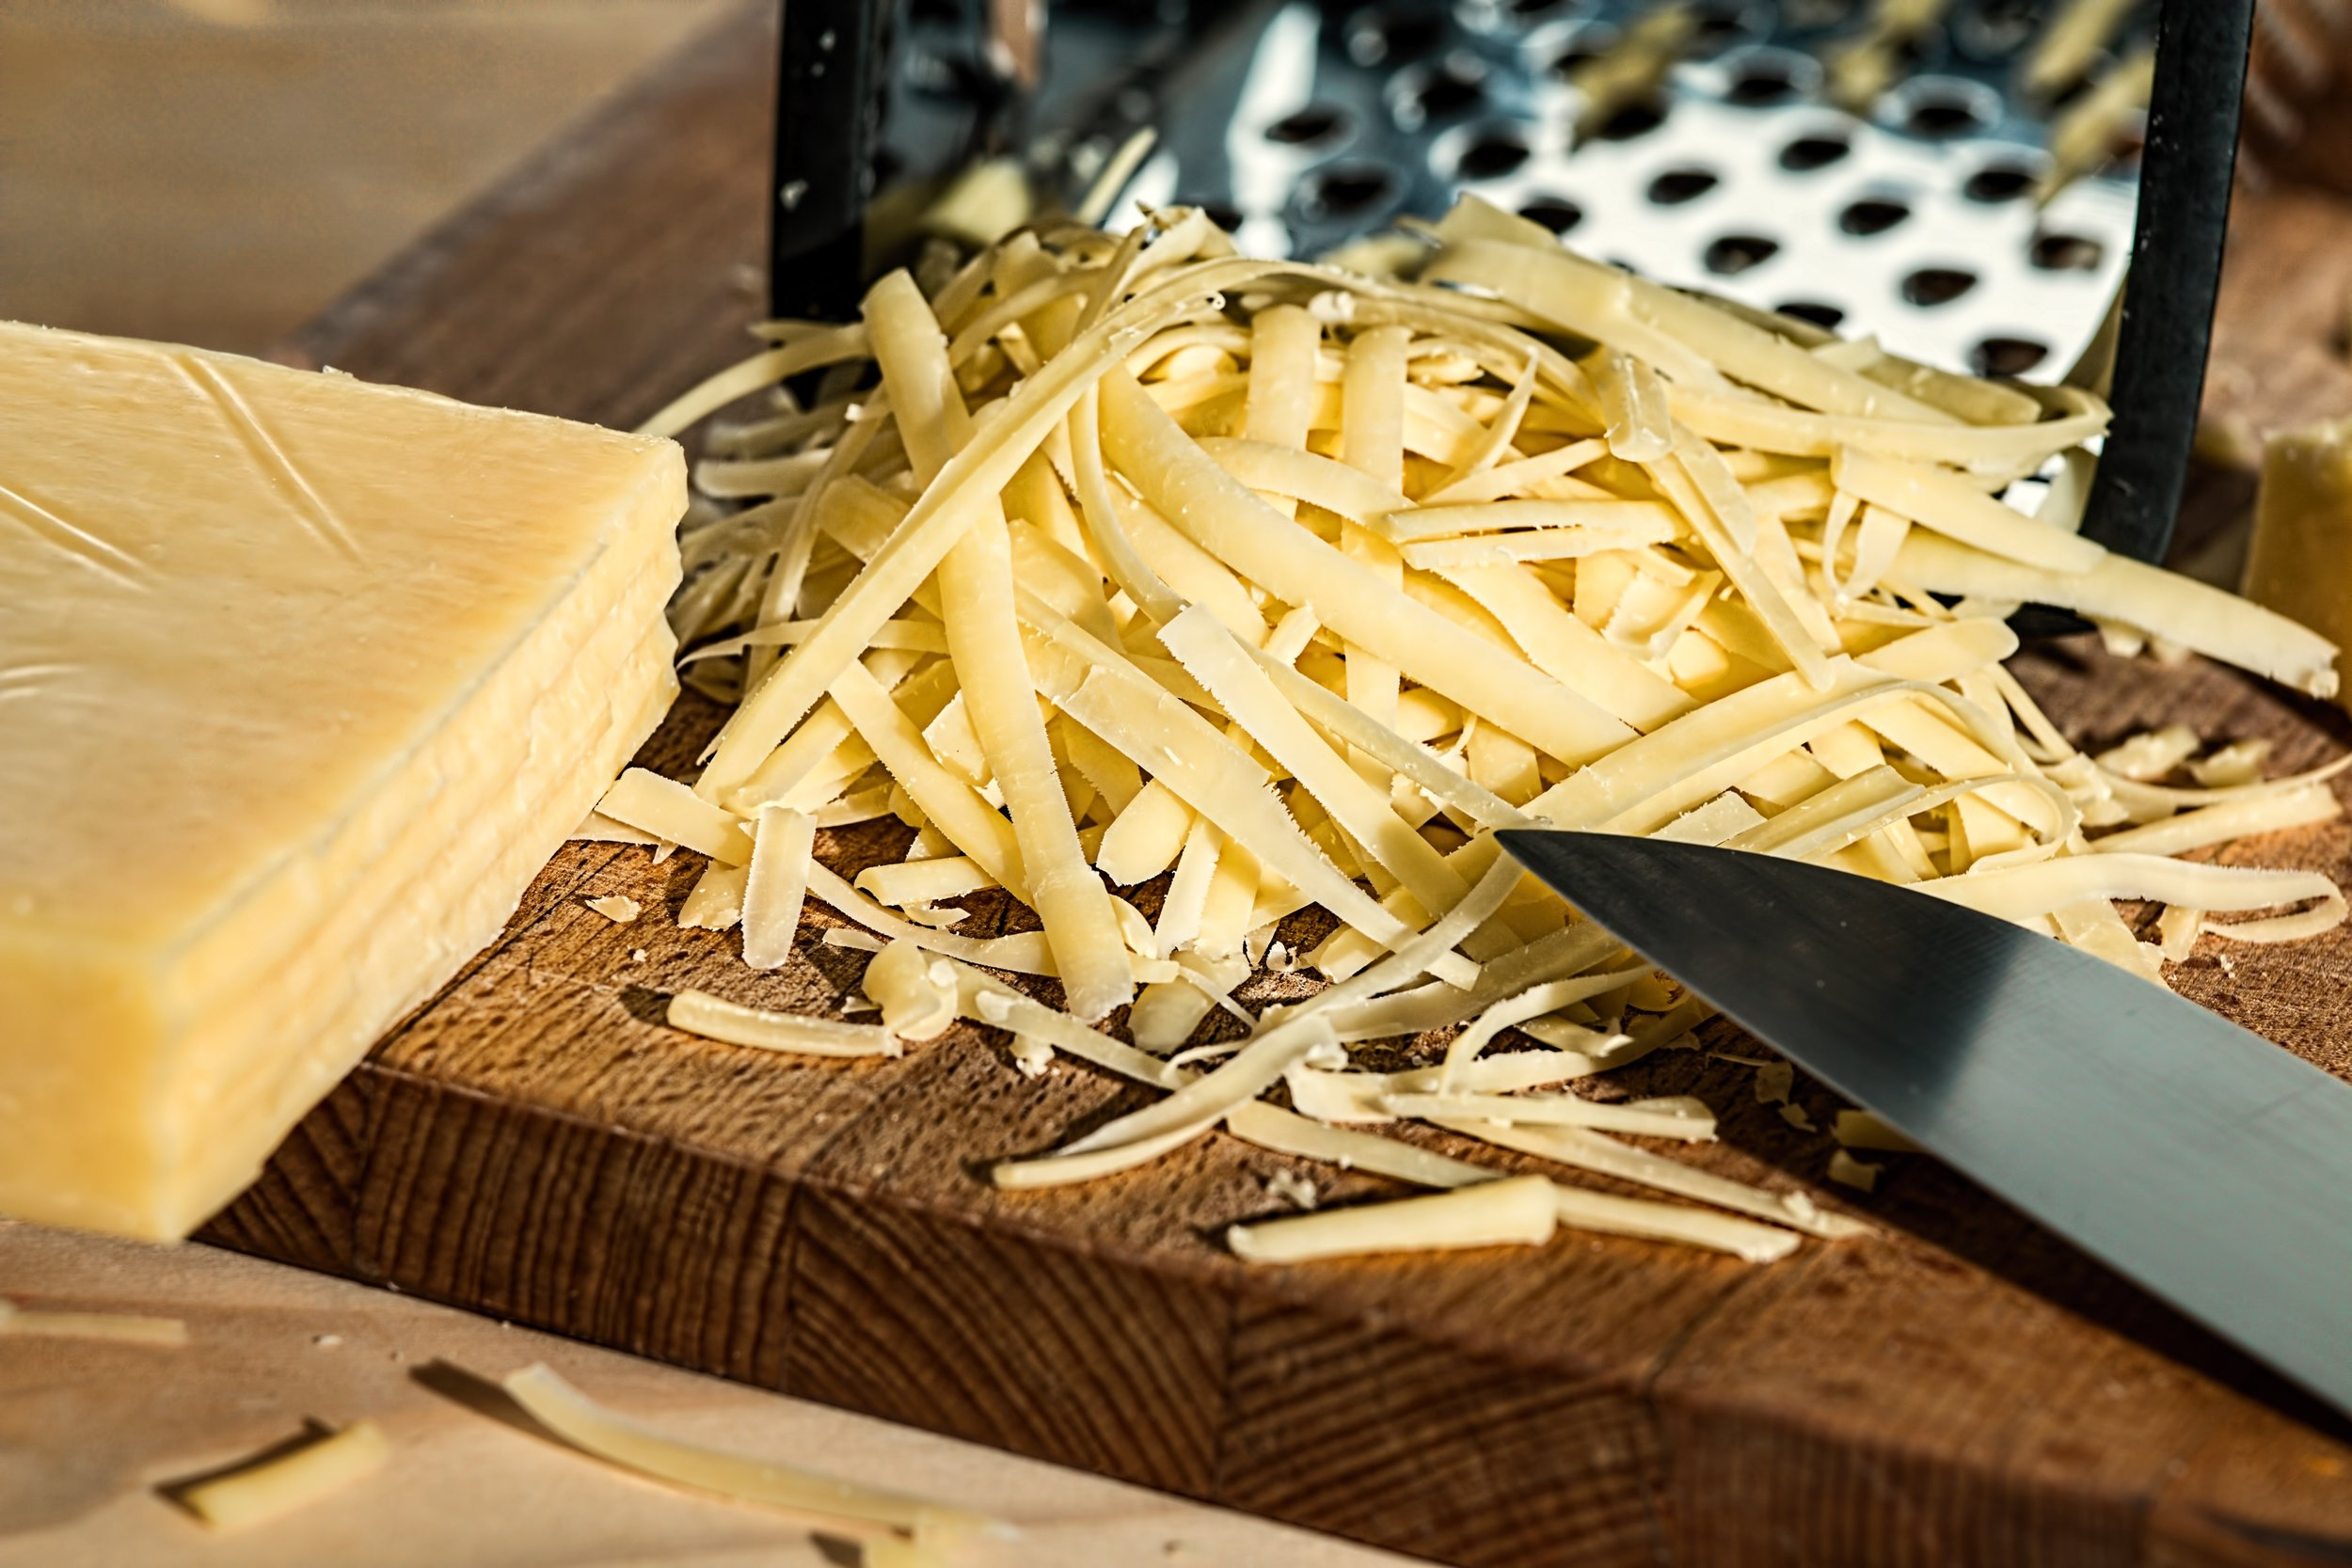 grated-cheese-961152.jpg